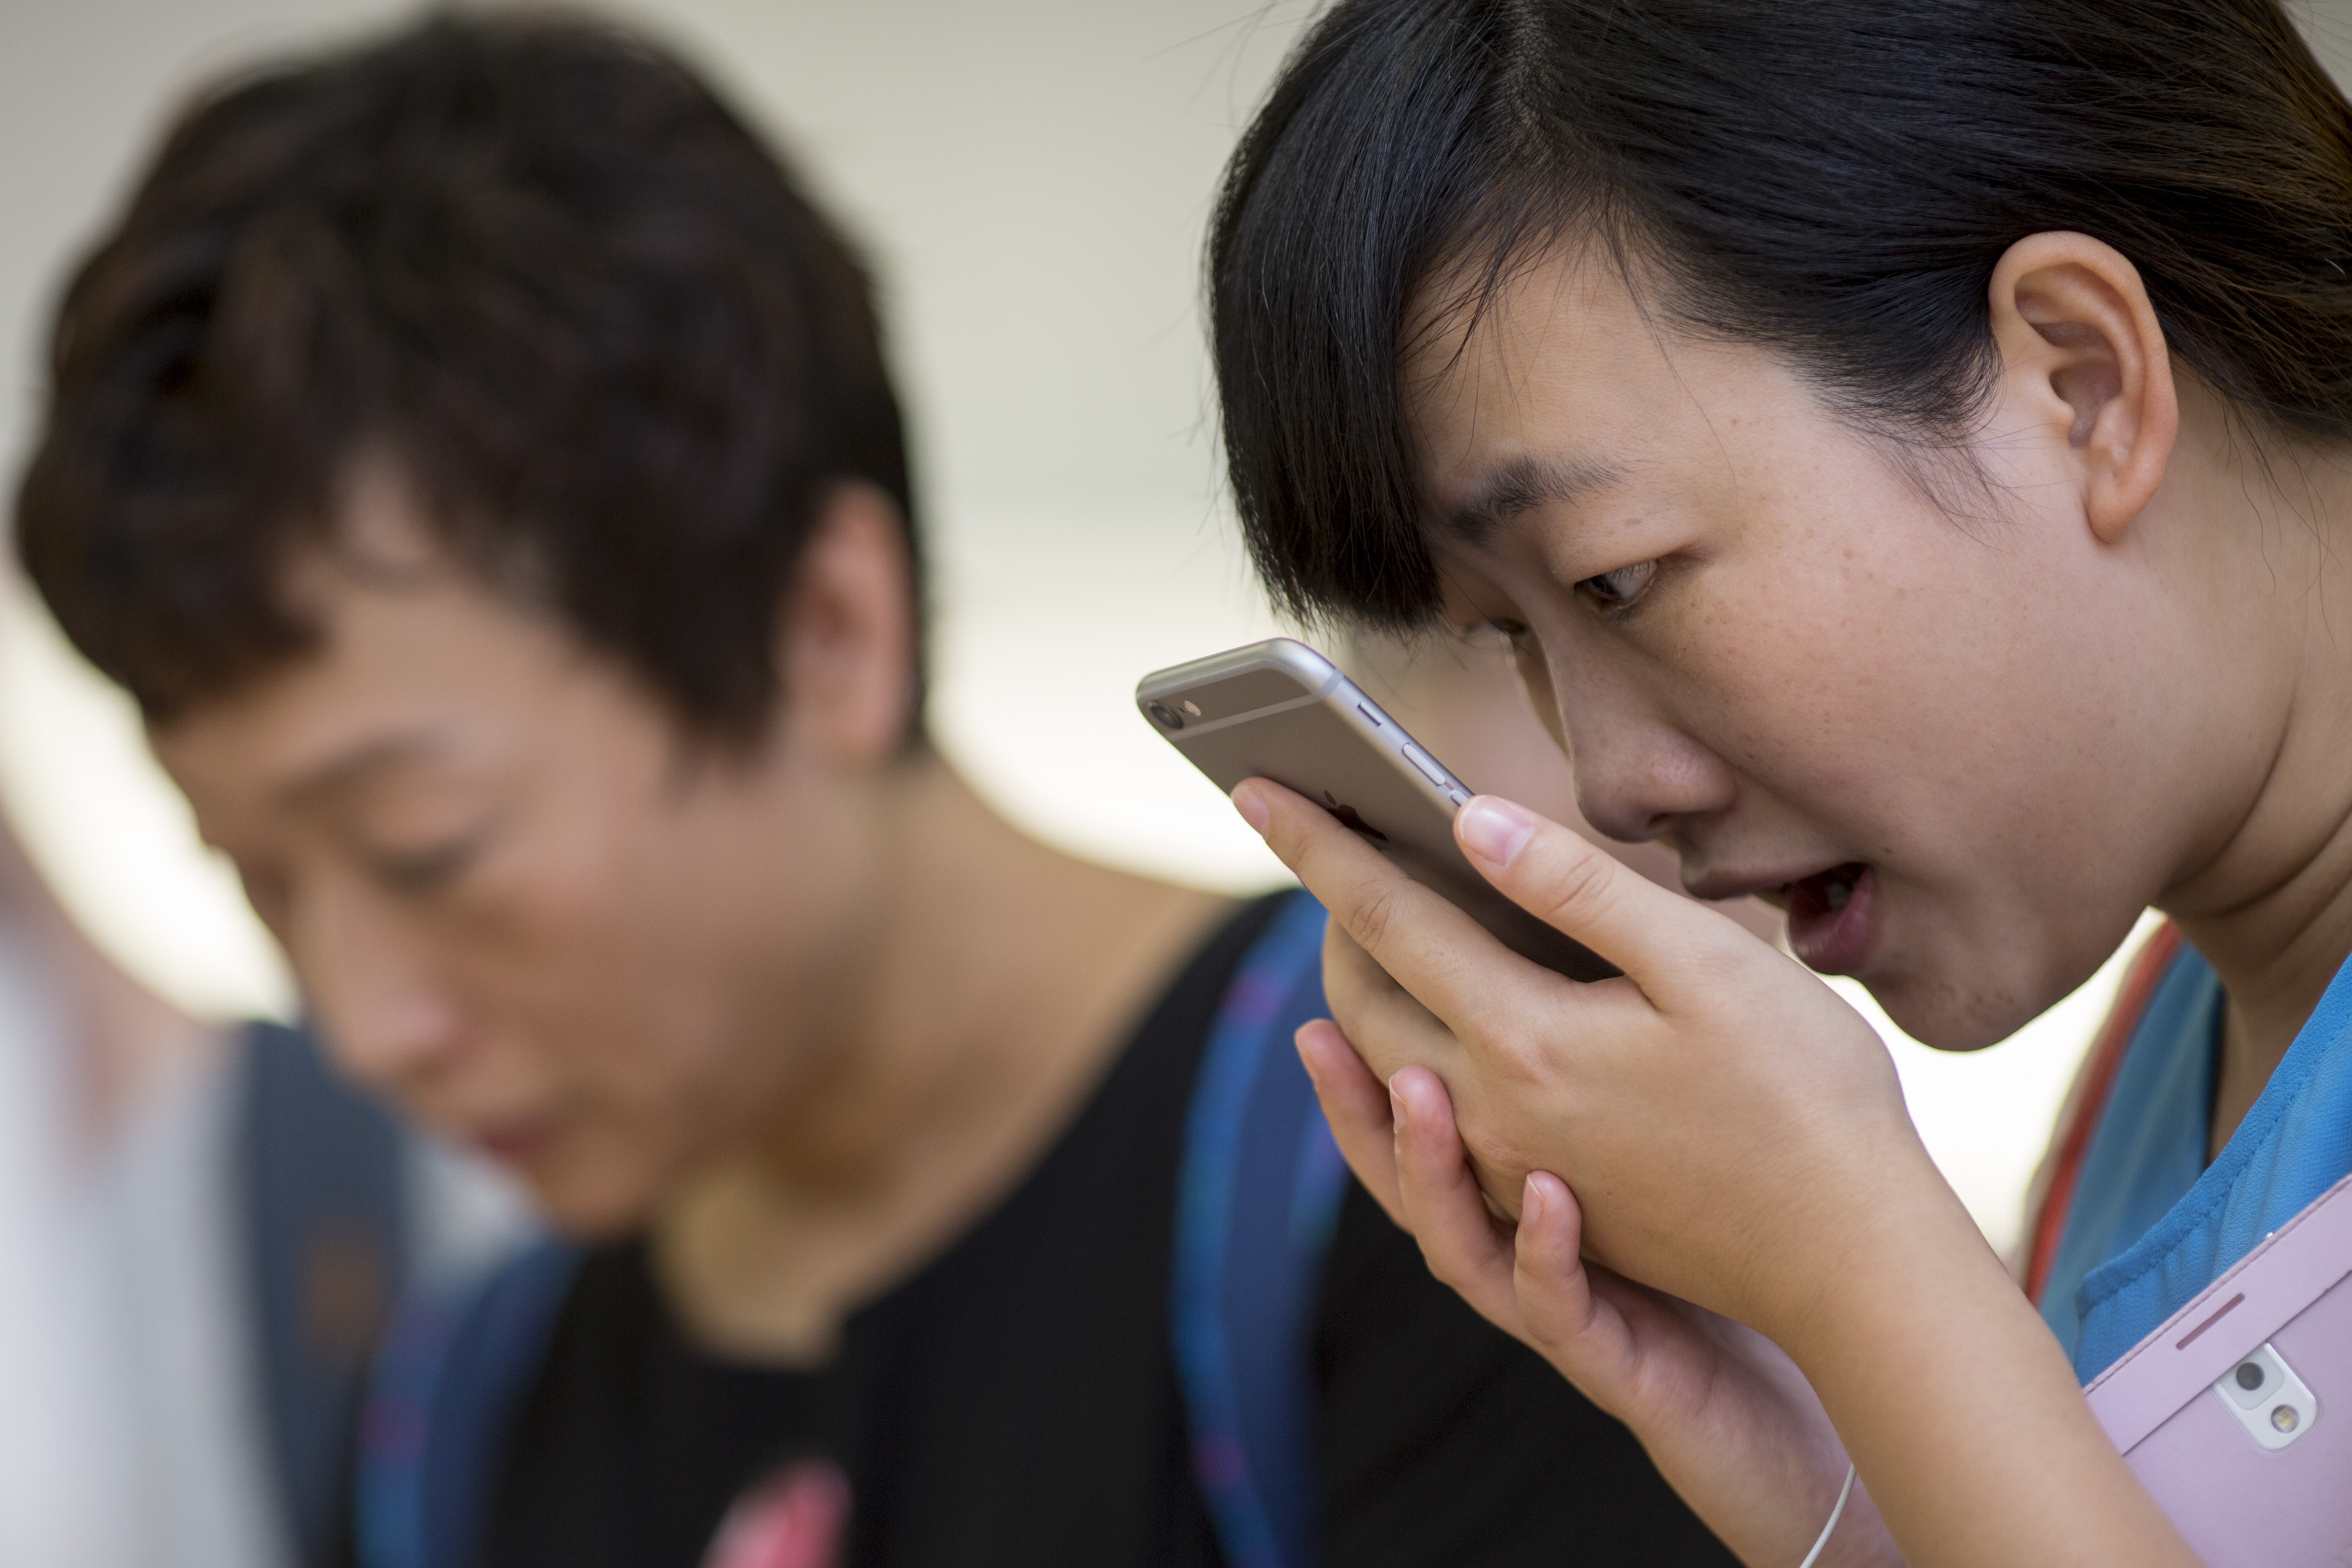 A customer tries the Siri voice recognition function on an Apple Inc. iPhone 6 Plus at the company's Causeway Bay store during the sales launch of the iPhone 6 and iPhone 6 Plus in Hong Kong, China, on Friday, Sept. 19, 2014.